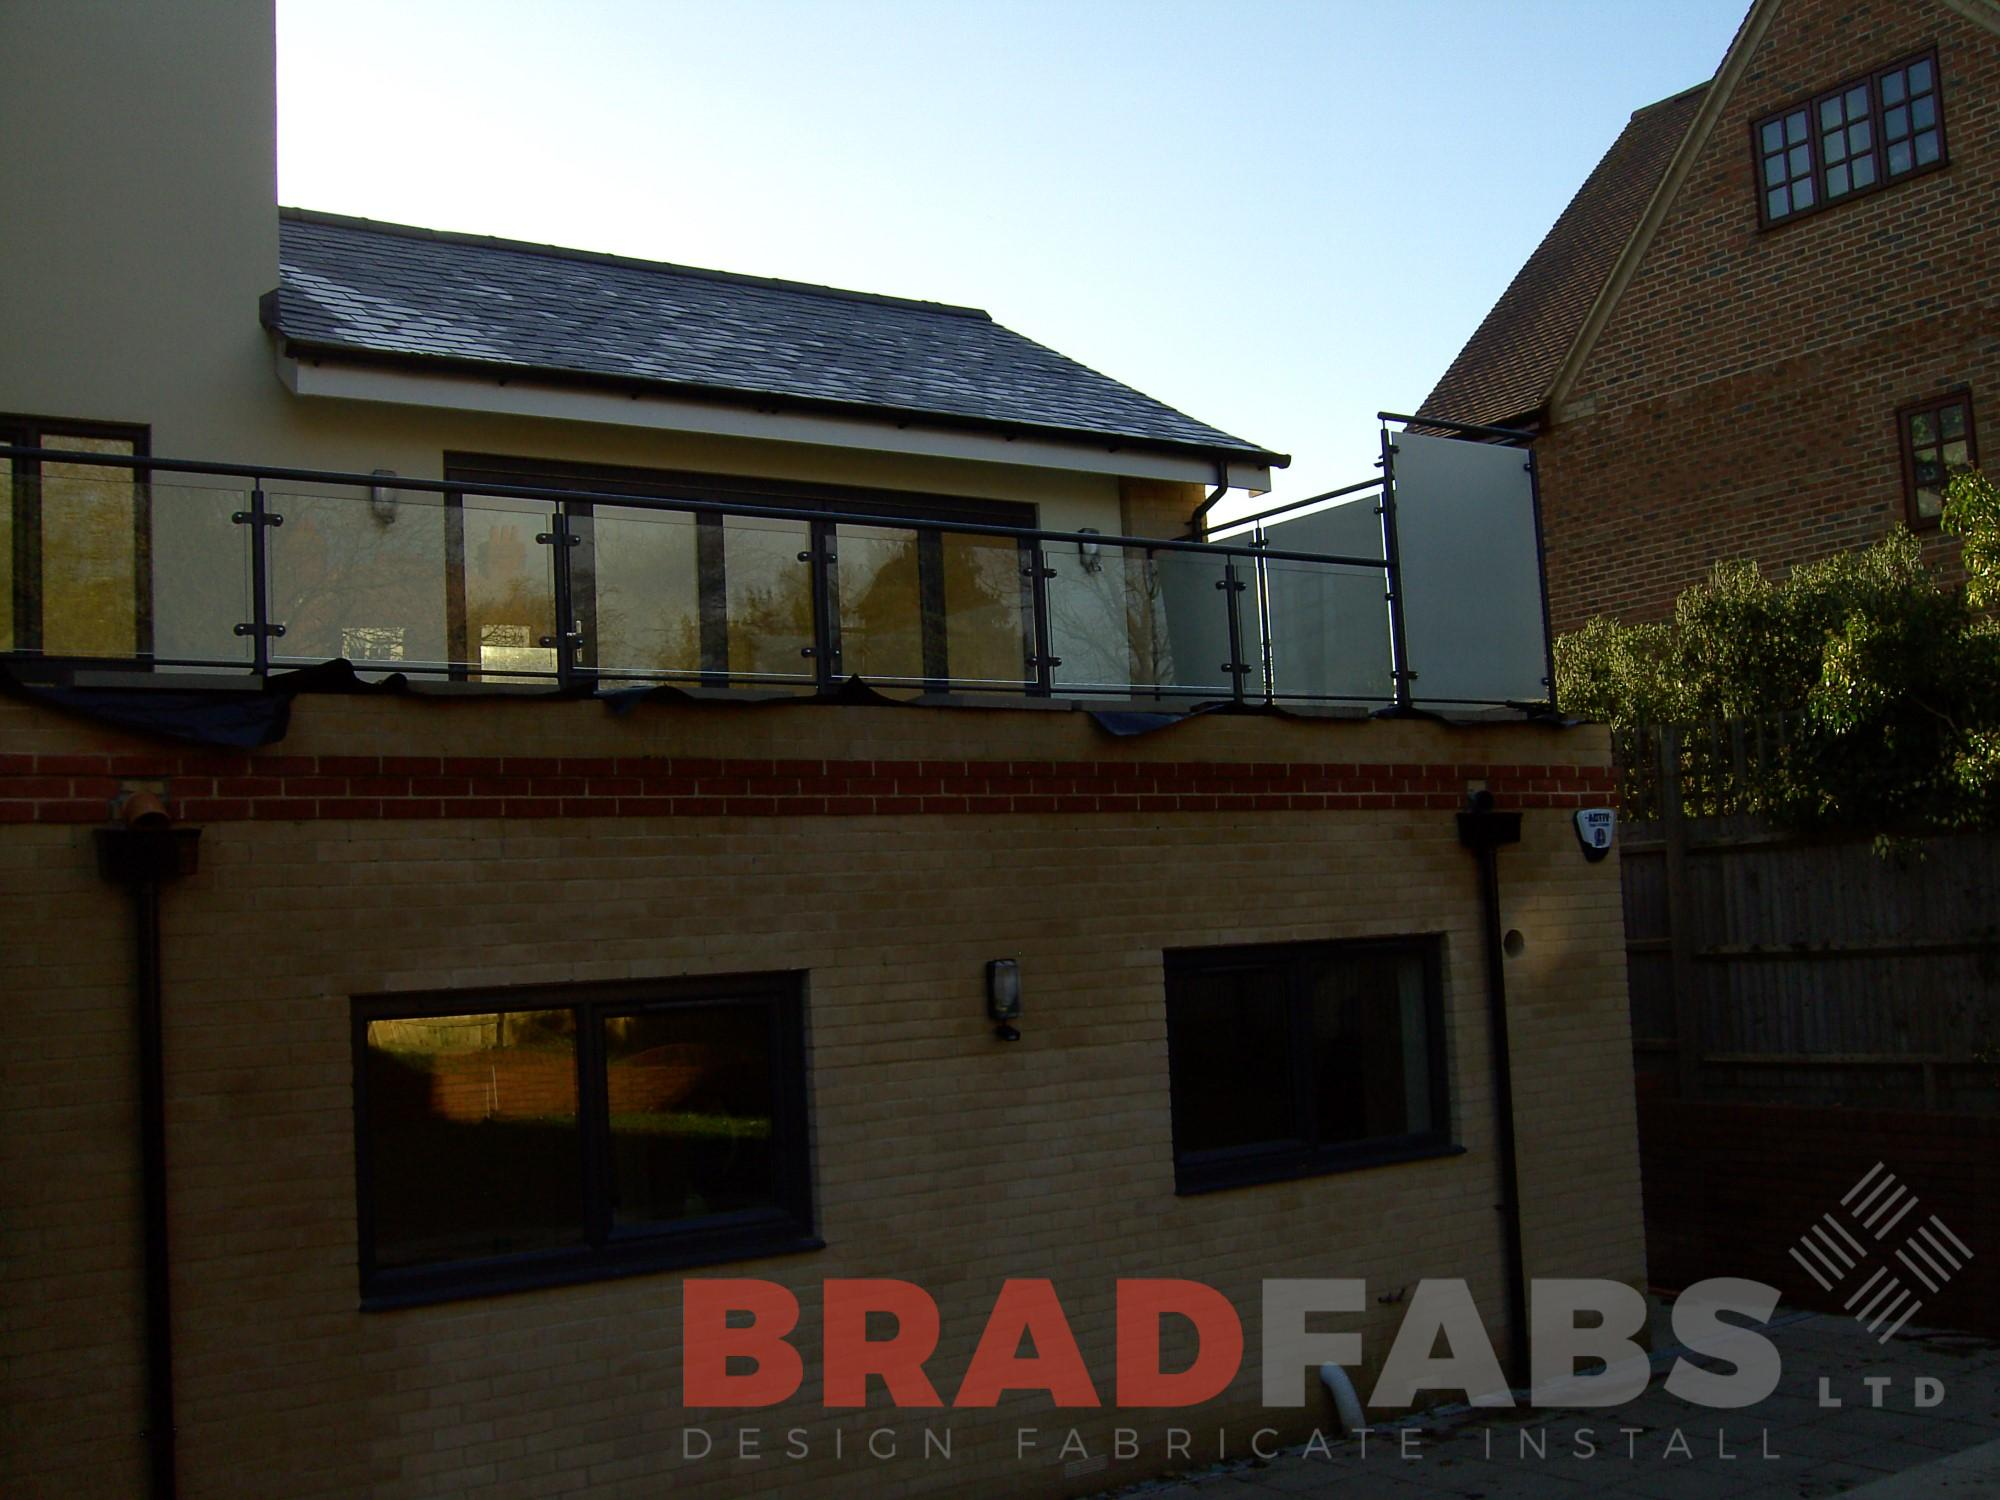 Bradfabs designed and installed this balcony balustrade with privacy glass at a domestic property UK